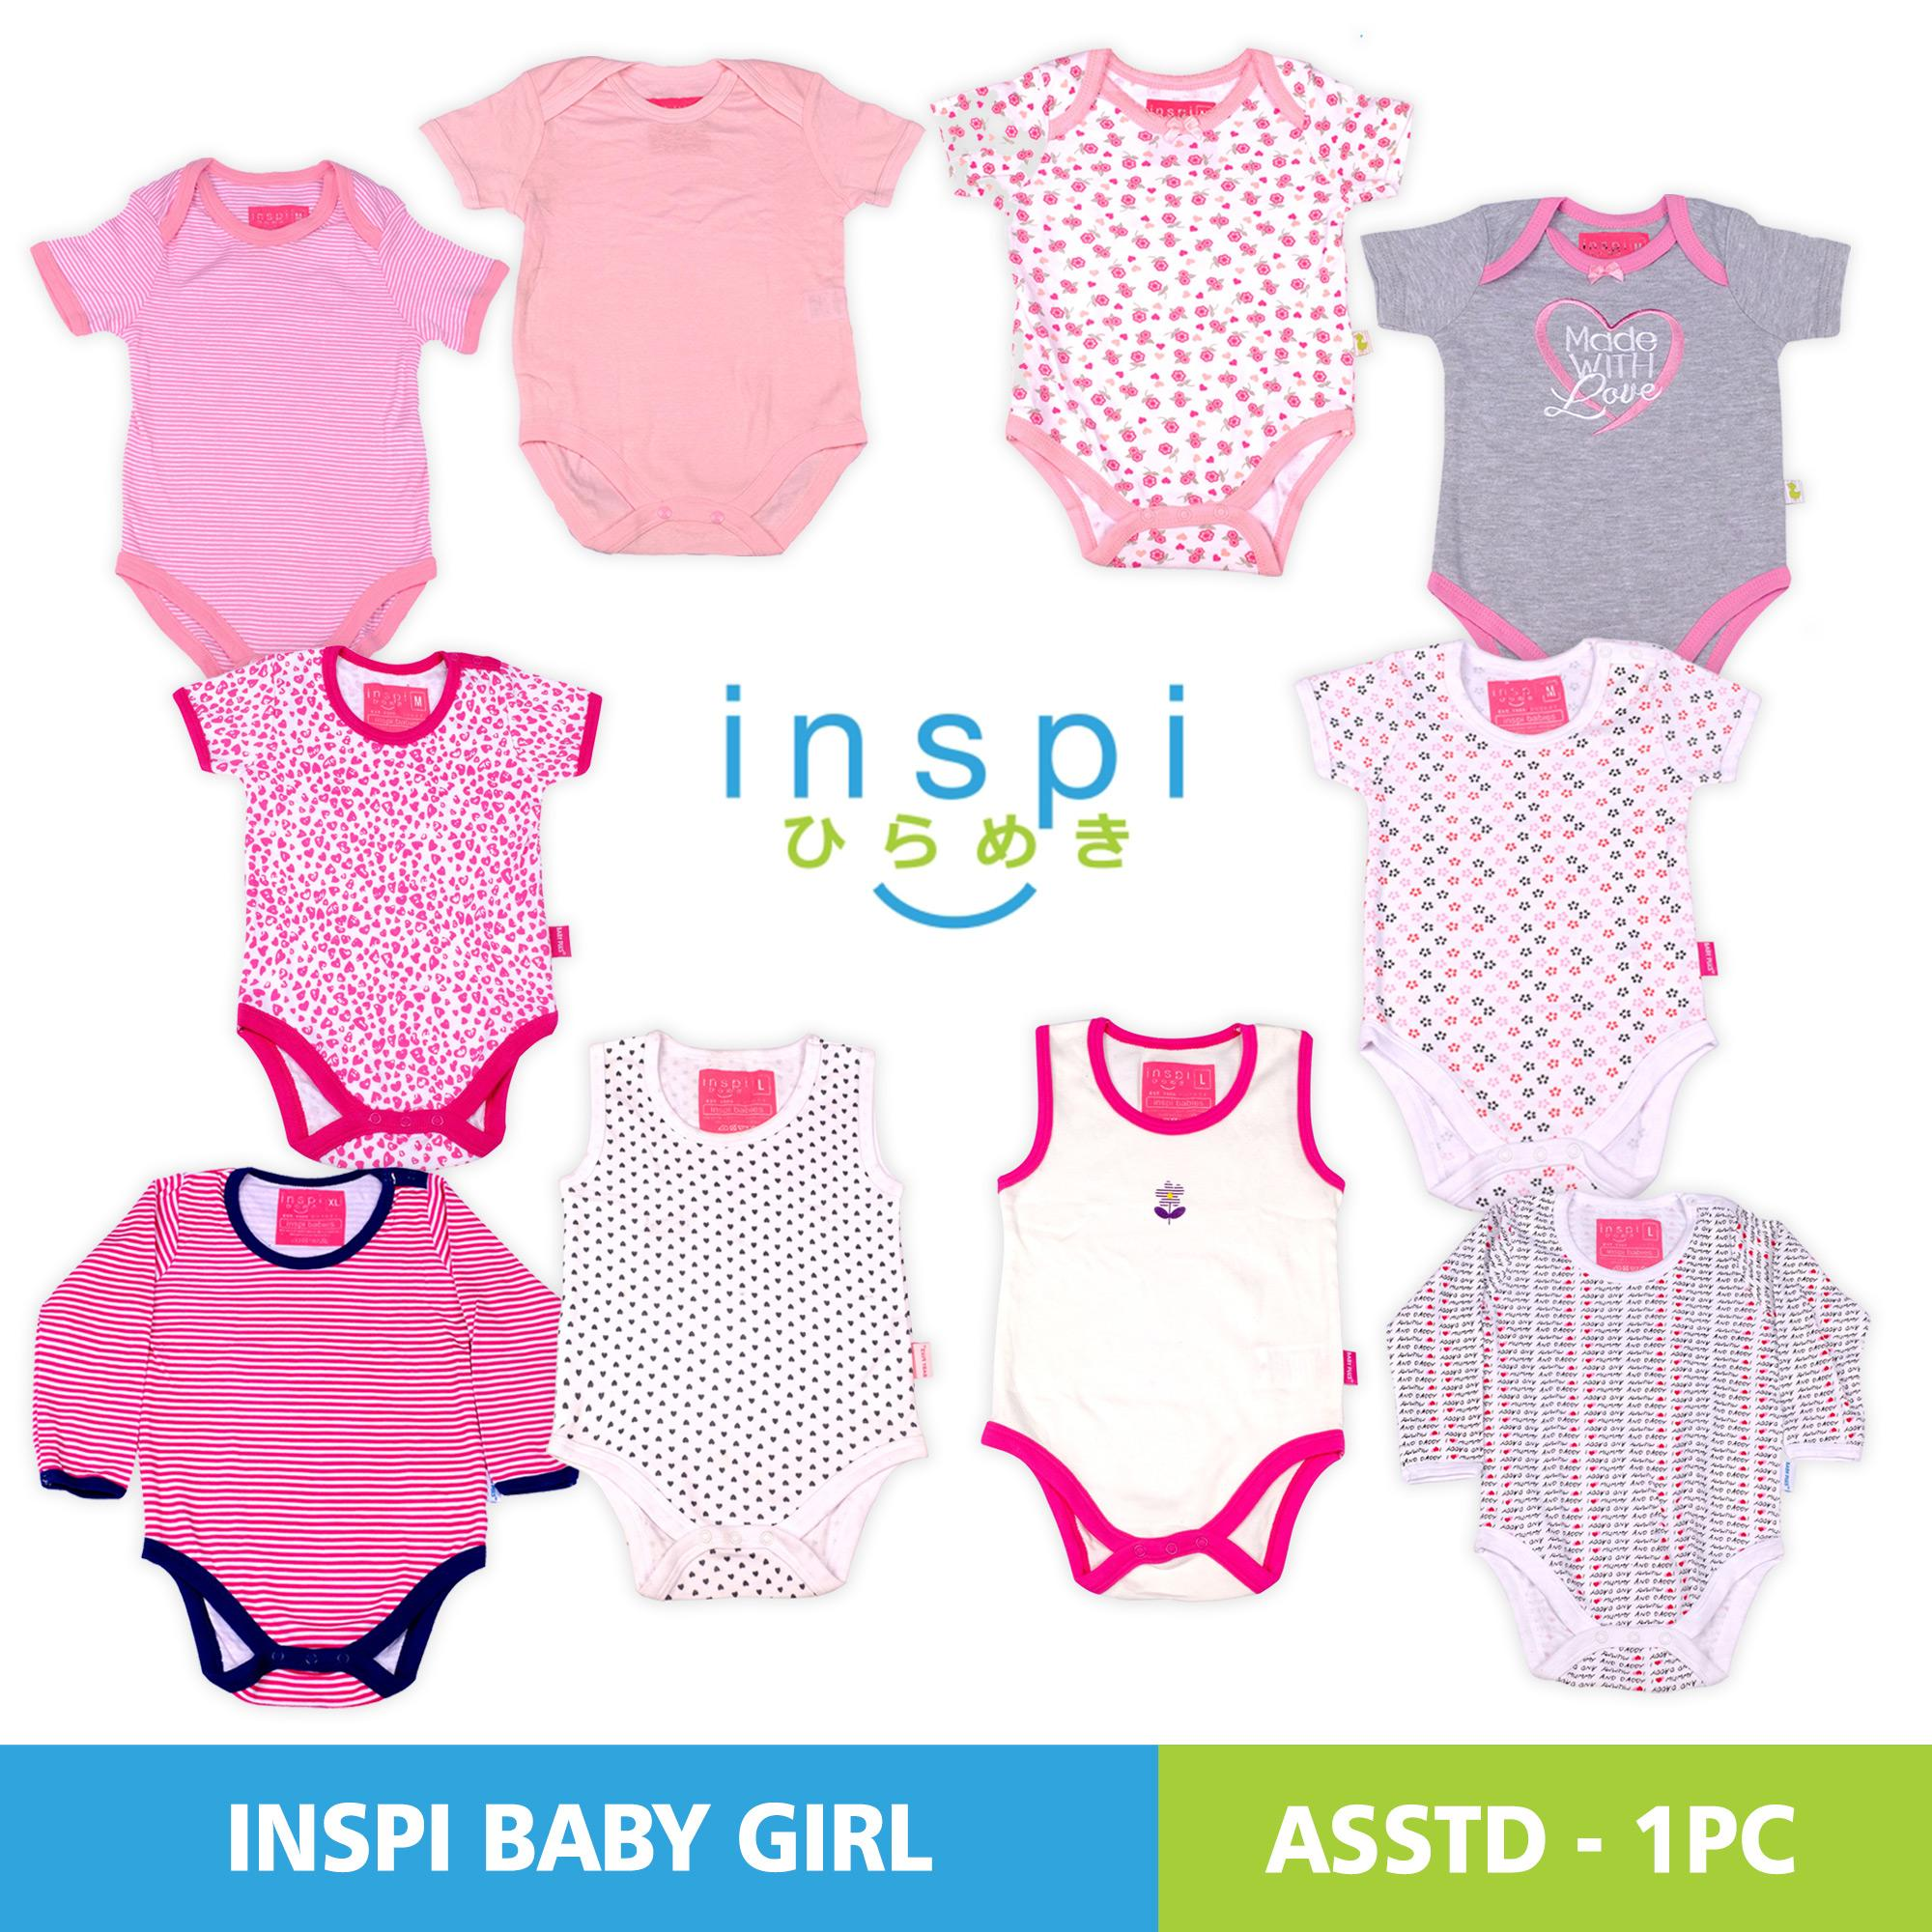 cb71a0aeed496 INSPI Babies Girls ASSORTED SINGLES 100% Cotton Onesies Newborn Infant  Quality Baby clothes One-